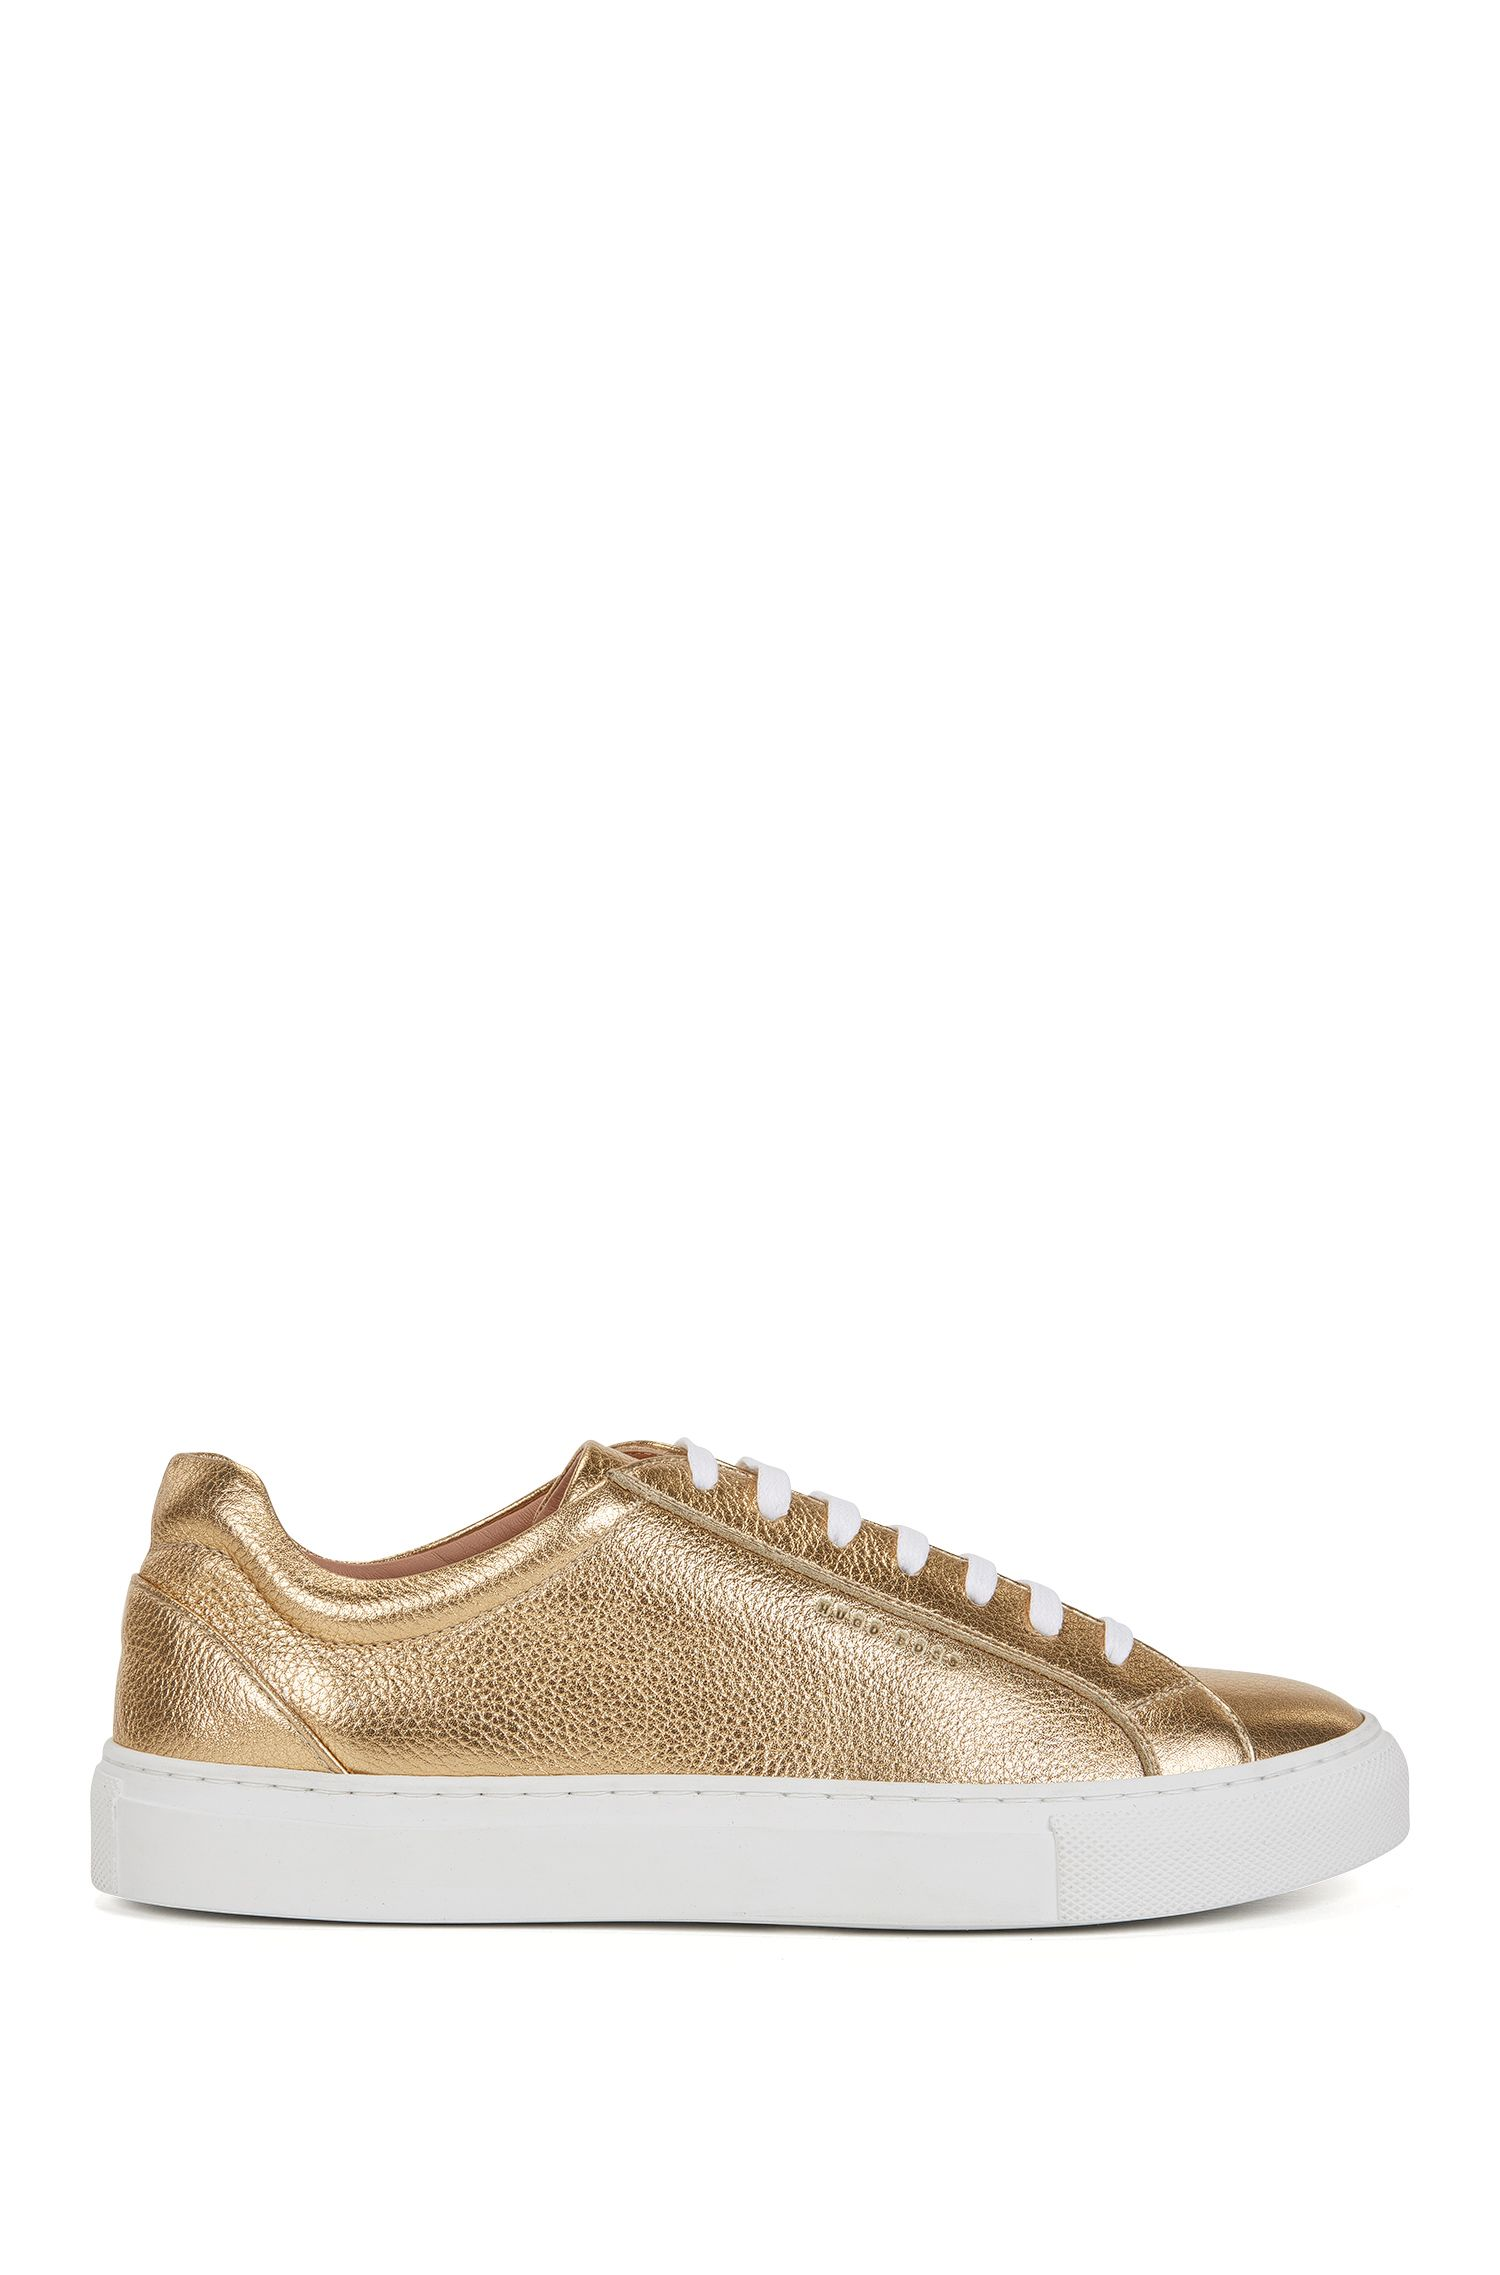 Sneakers low-top in pelle effetto metallizzato